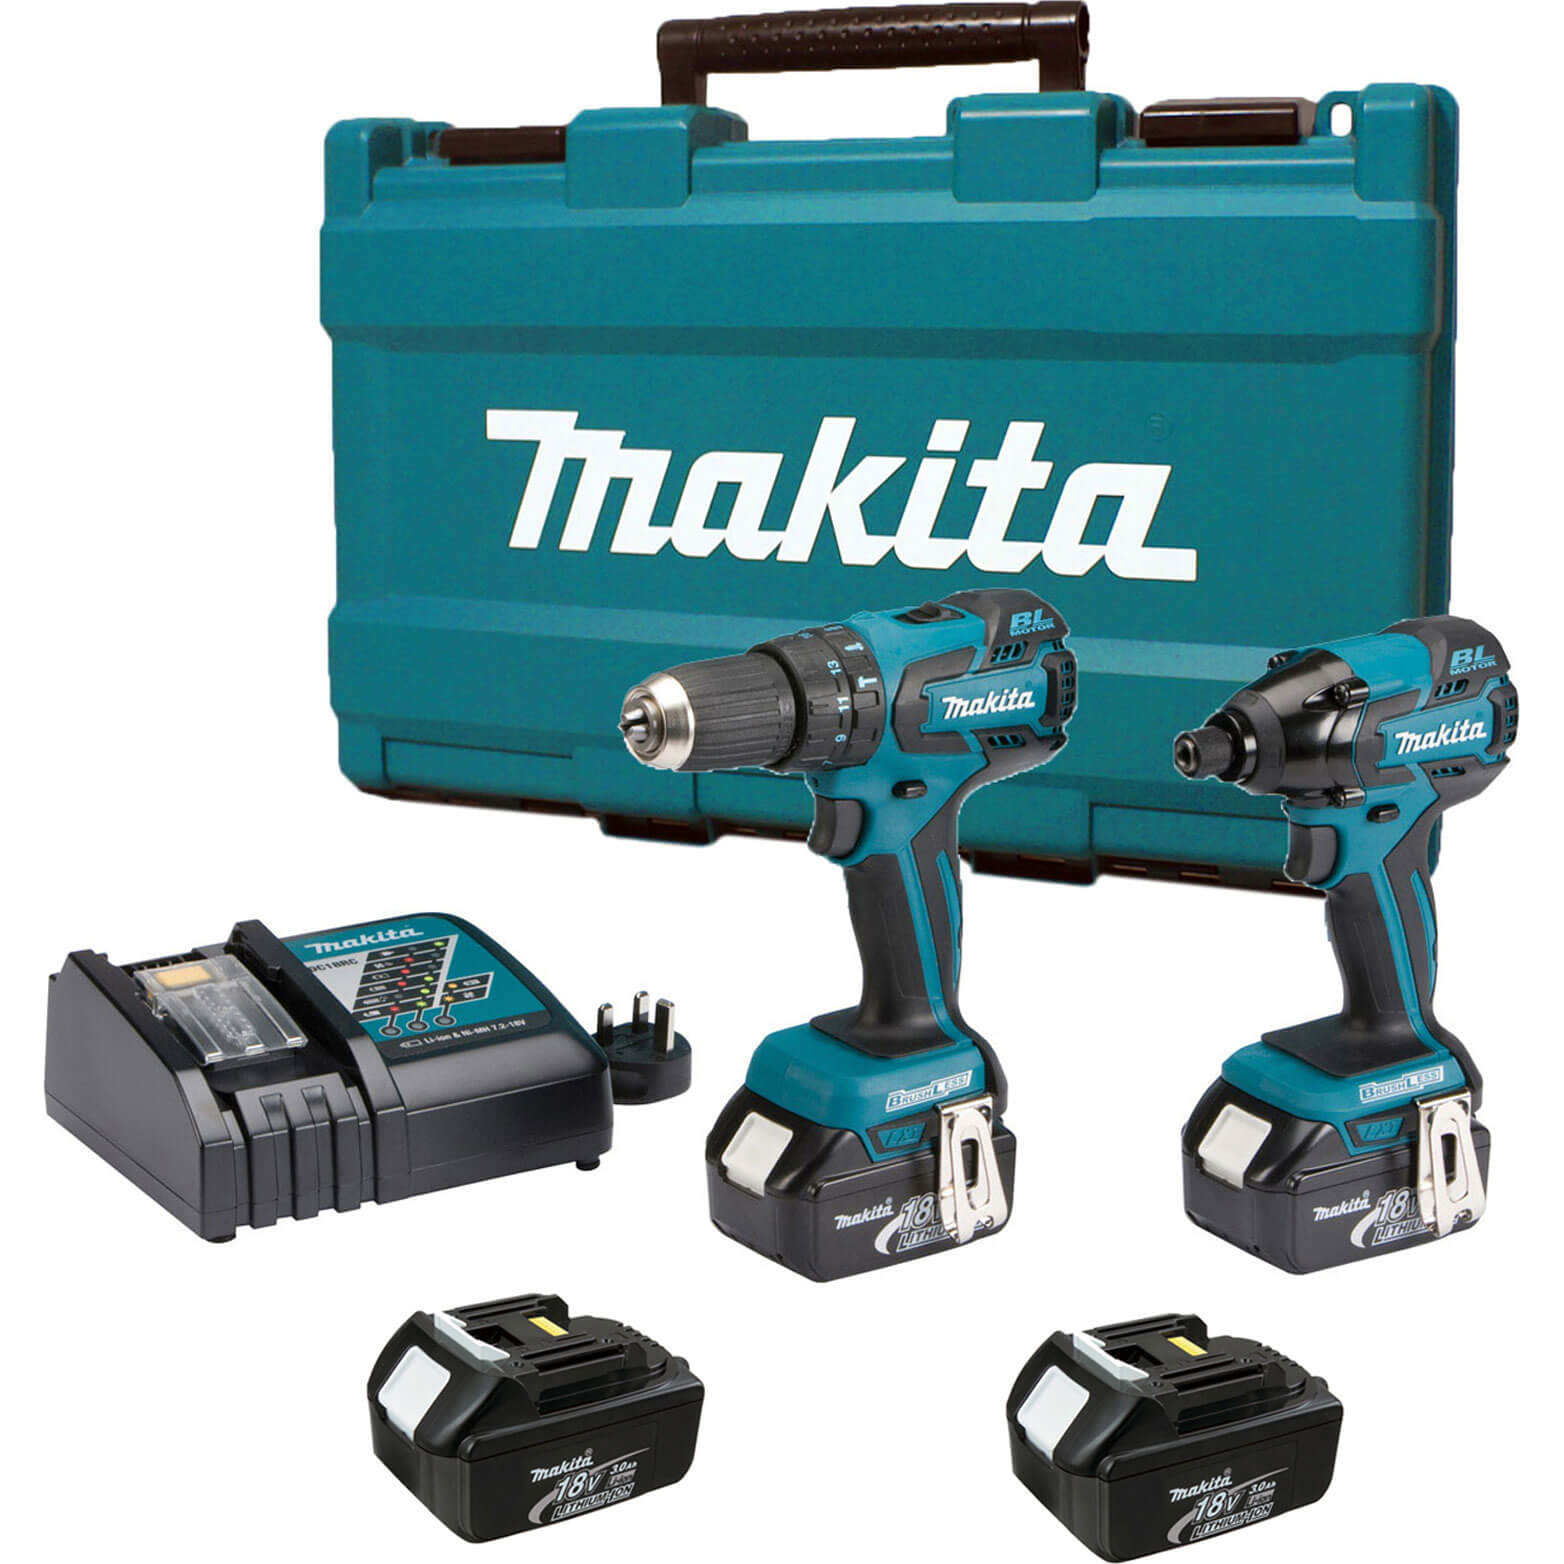 makita dk18005 18v cordless brushless combi drill impact. Black Bedroom Furniture Sets. Home Design Ideas